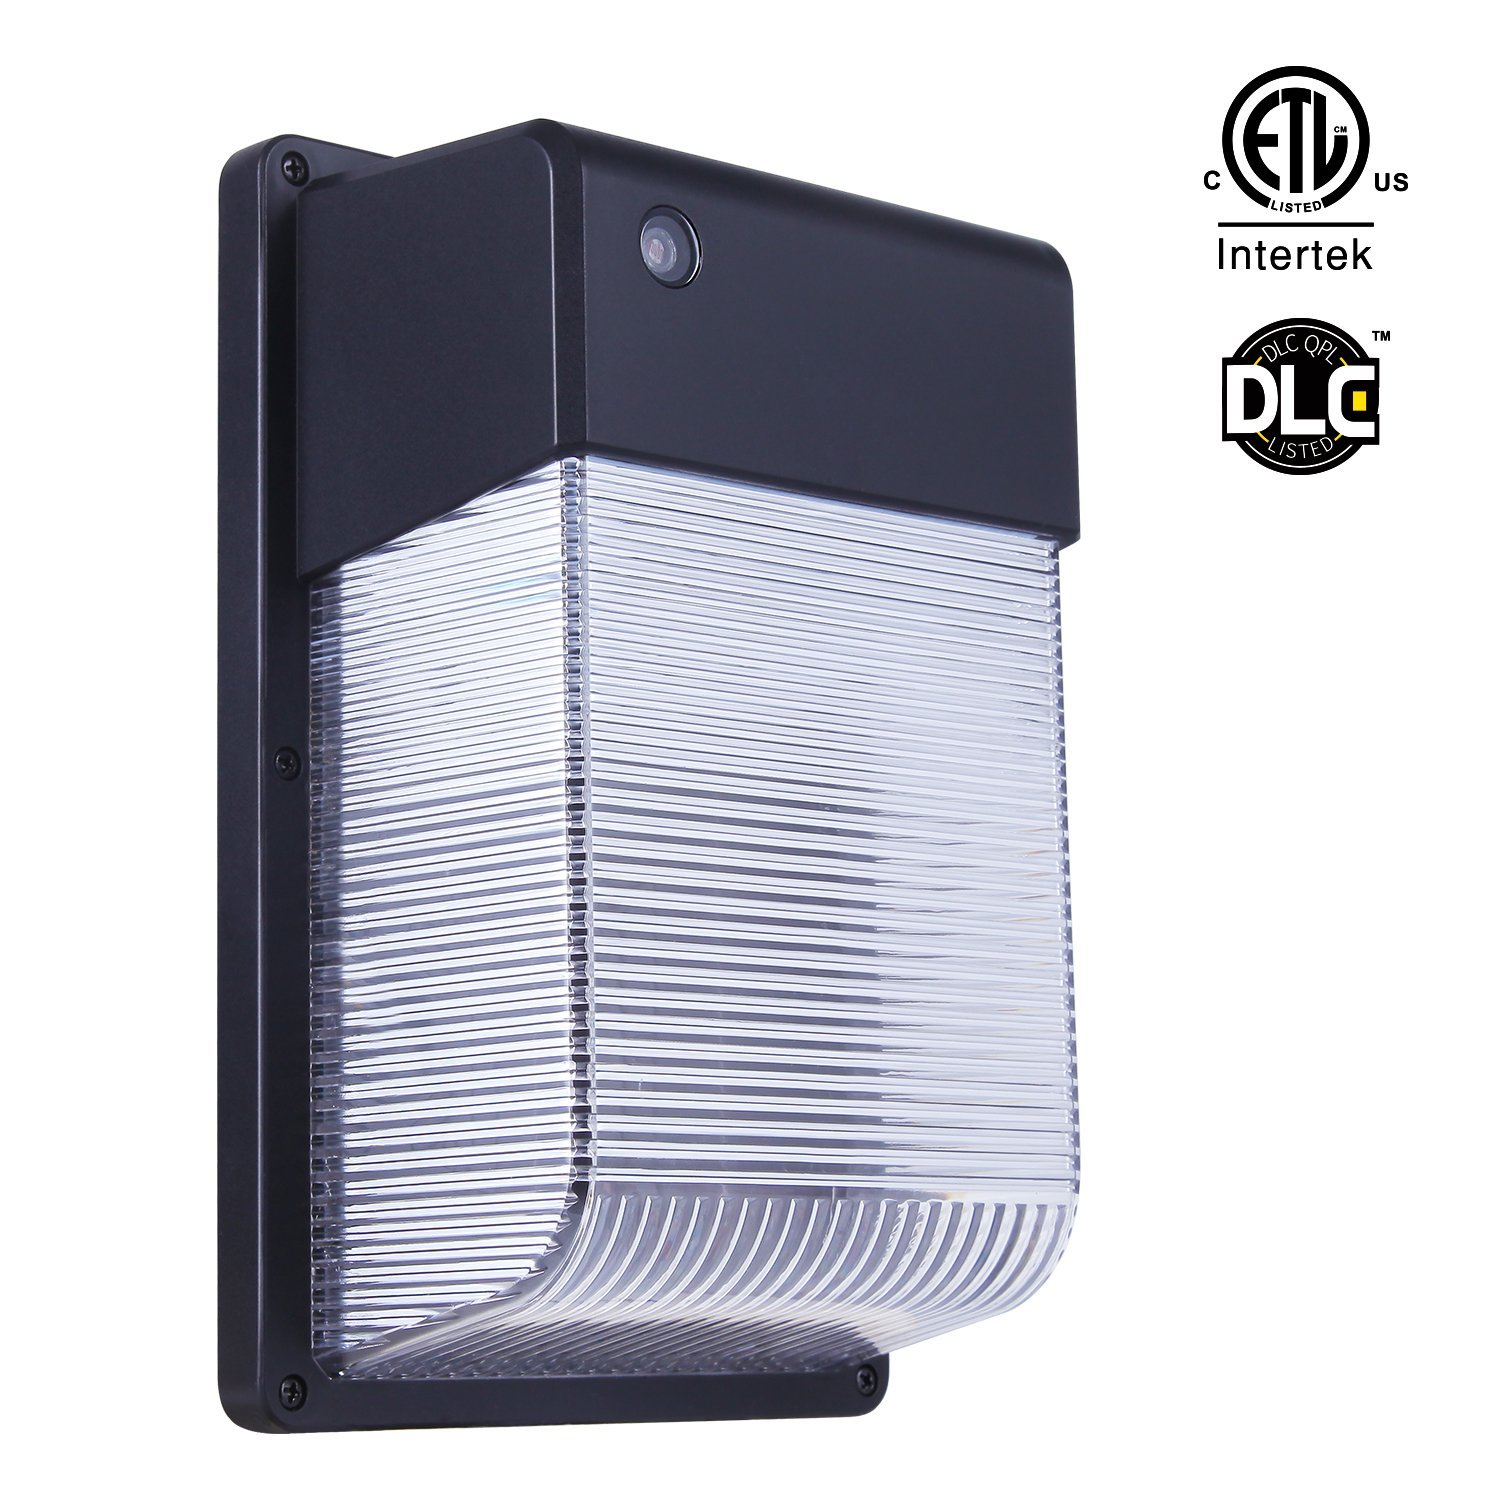 JJC LED Wall Mount Light with Sensor, Wall Pack 5000k-Daylight 28W 2700lm, (Dusk-to-dawn Photocell,Waterproof IP65) 100-277Vac,250W Equiv. Photocell, ETL certified for Garage Basement Garden Yard